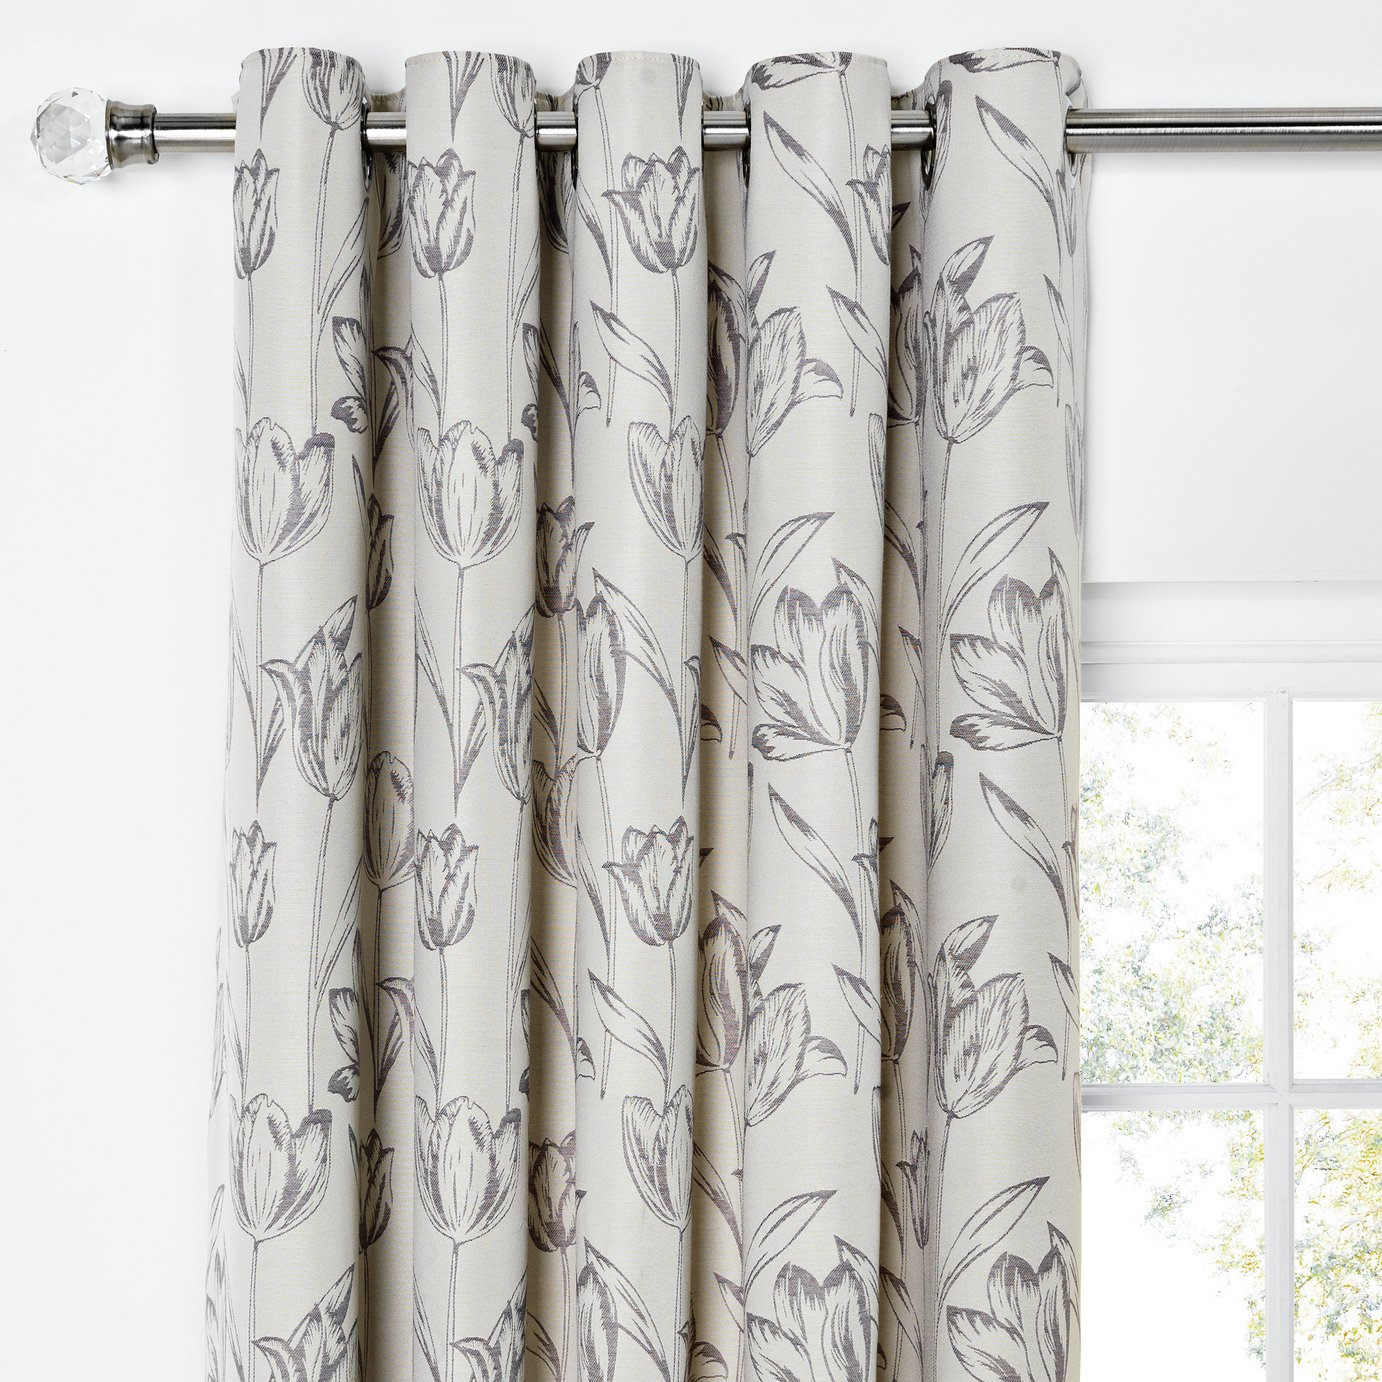 Heart of House Tula Lined Curtains - 168x229cm - Charcoal